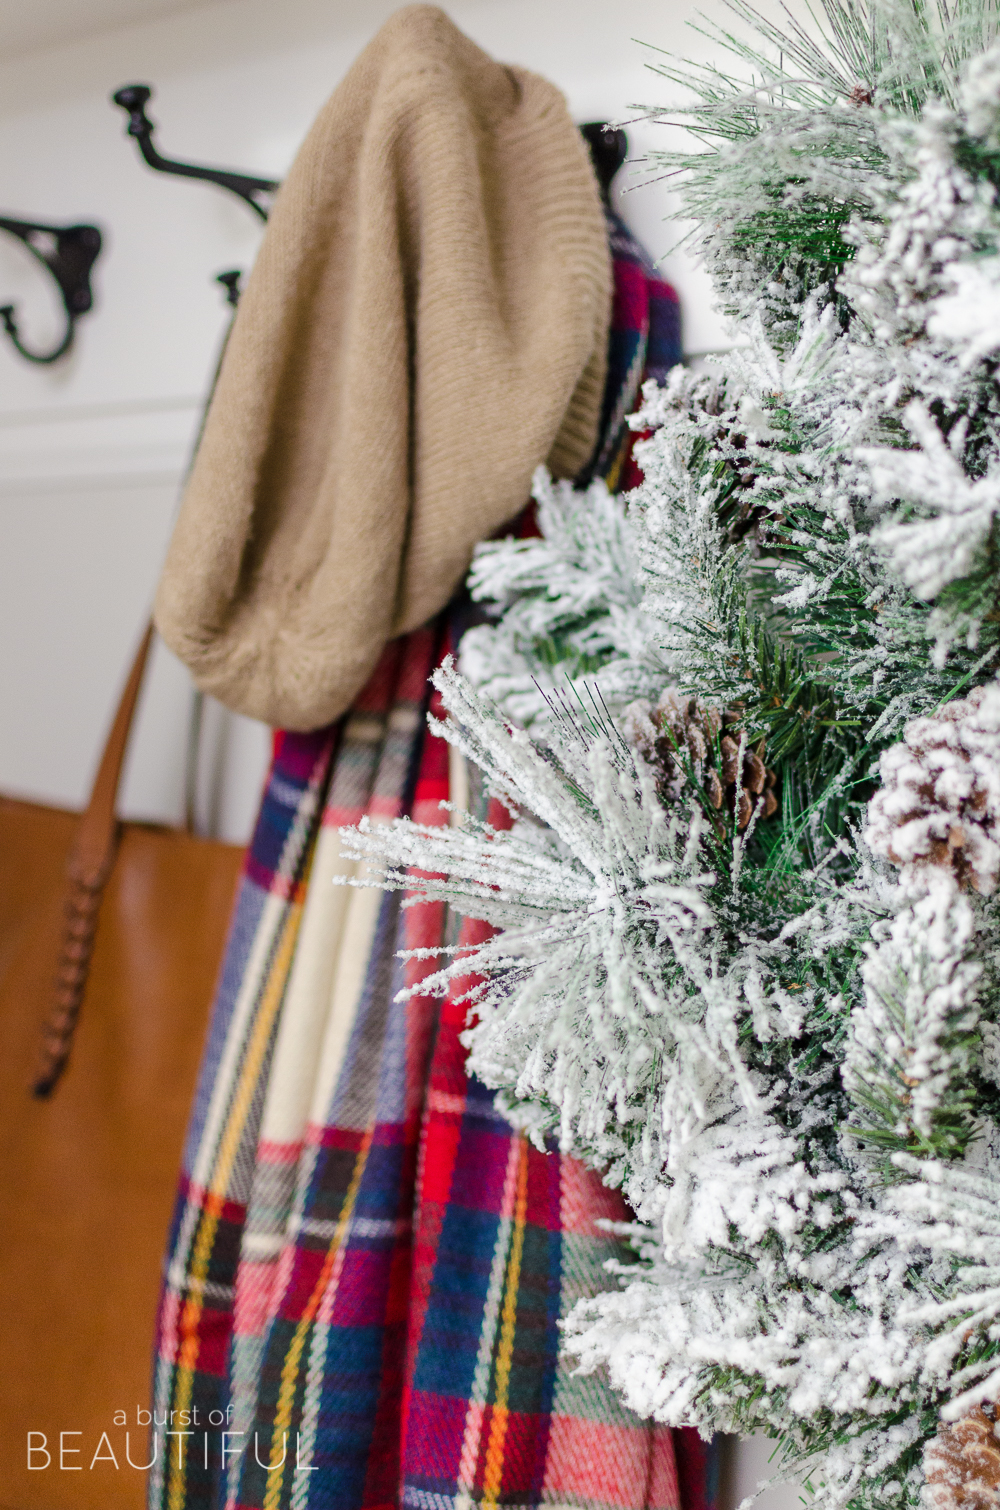 A simple Christmas entryway receives a dose of holiday charm with a flocked wreath, velvet pillows and packages wrapped in festive Christmas paper.